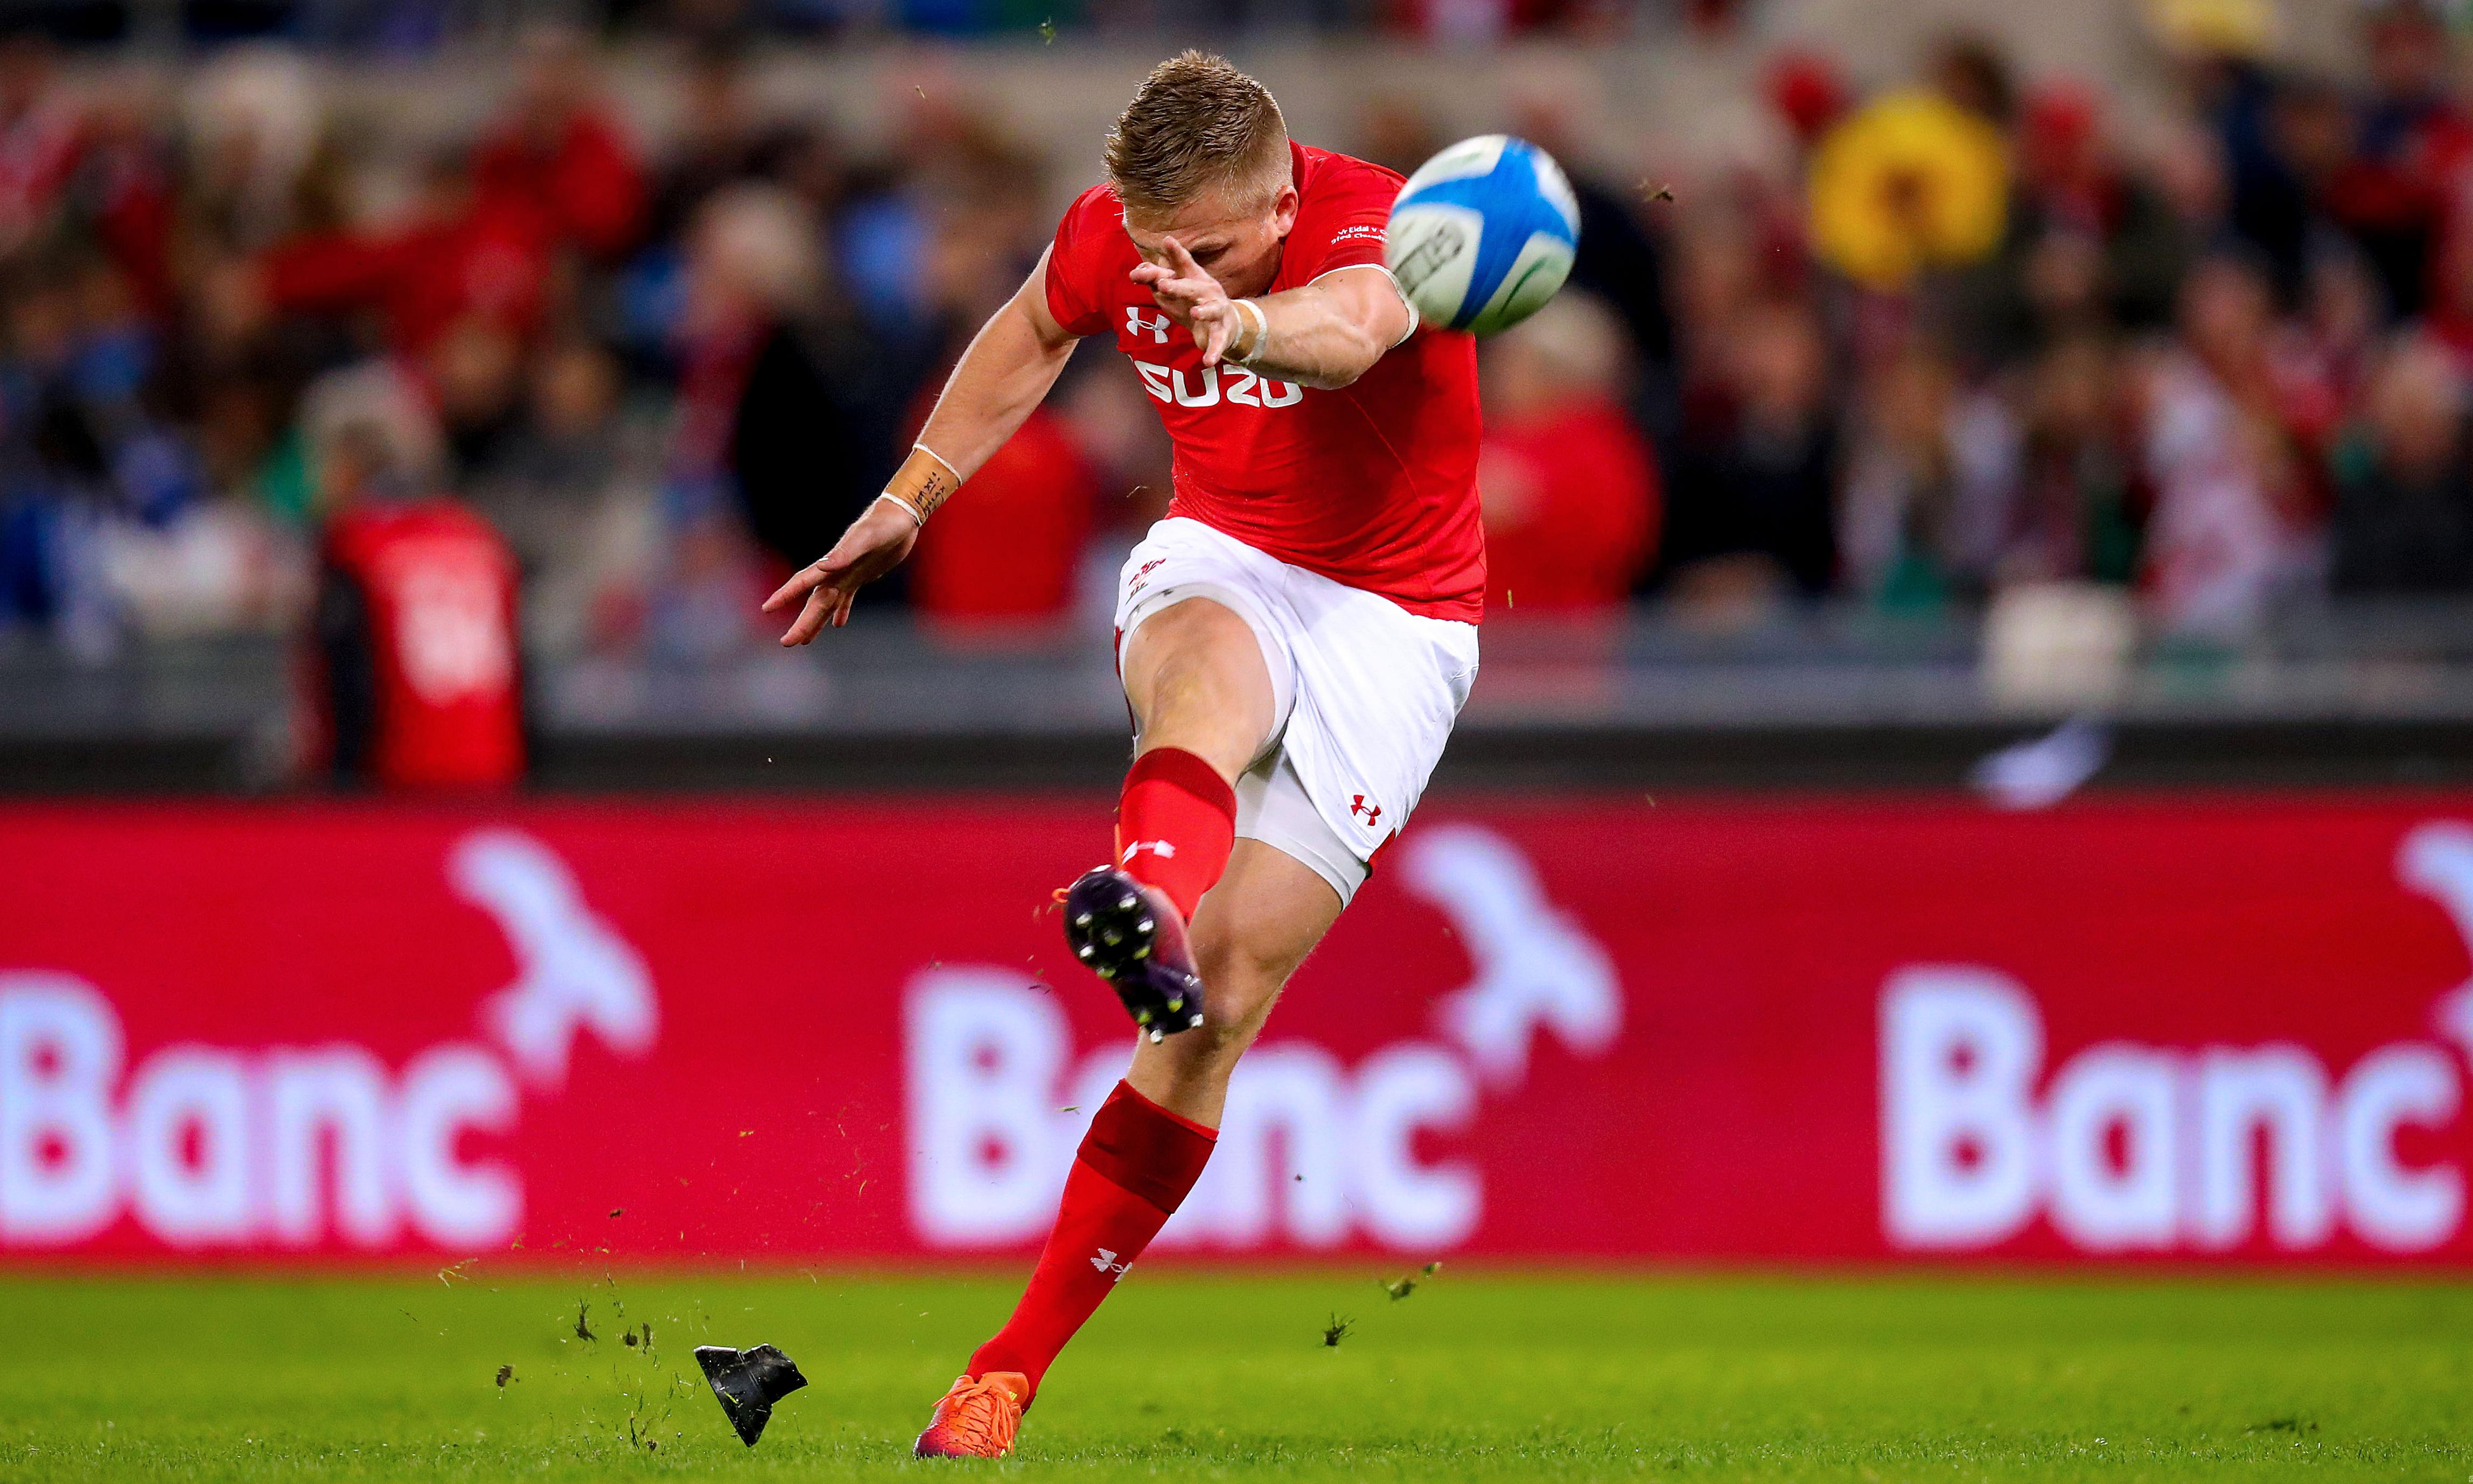 Gareth Anscombe selection highlights Wales's adapted Warrenball strategy